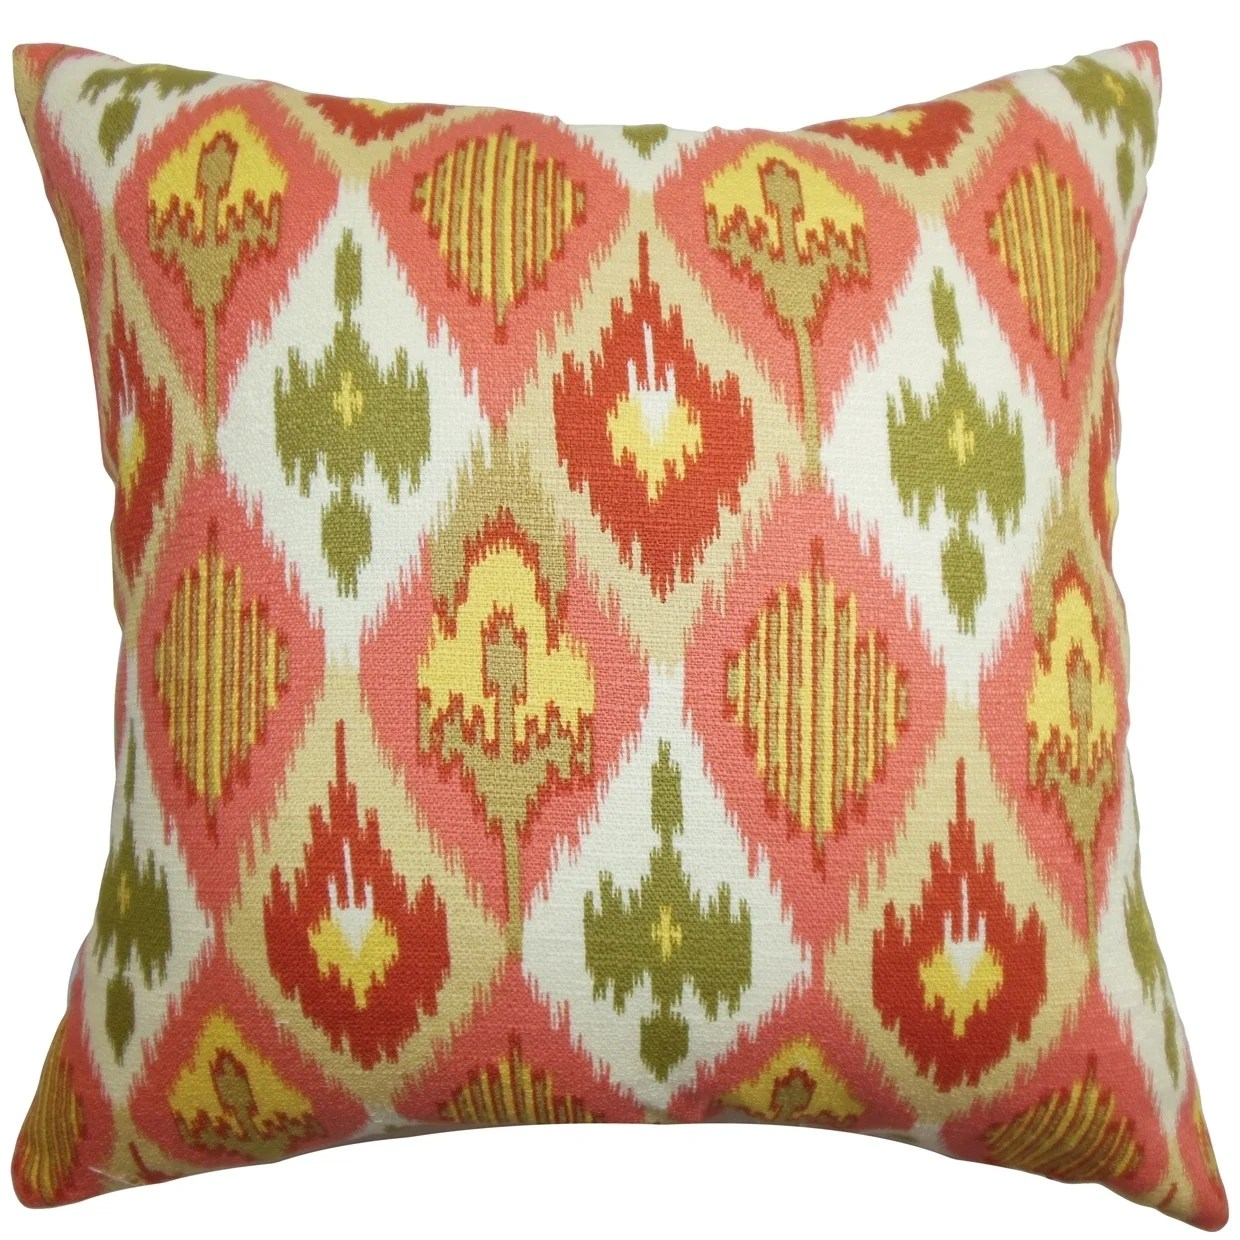 Bechet Ikat Down Fill Throw Pillow Pink Yellow